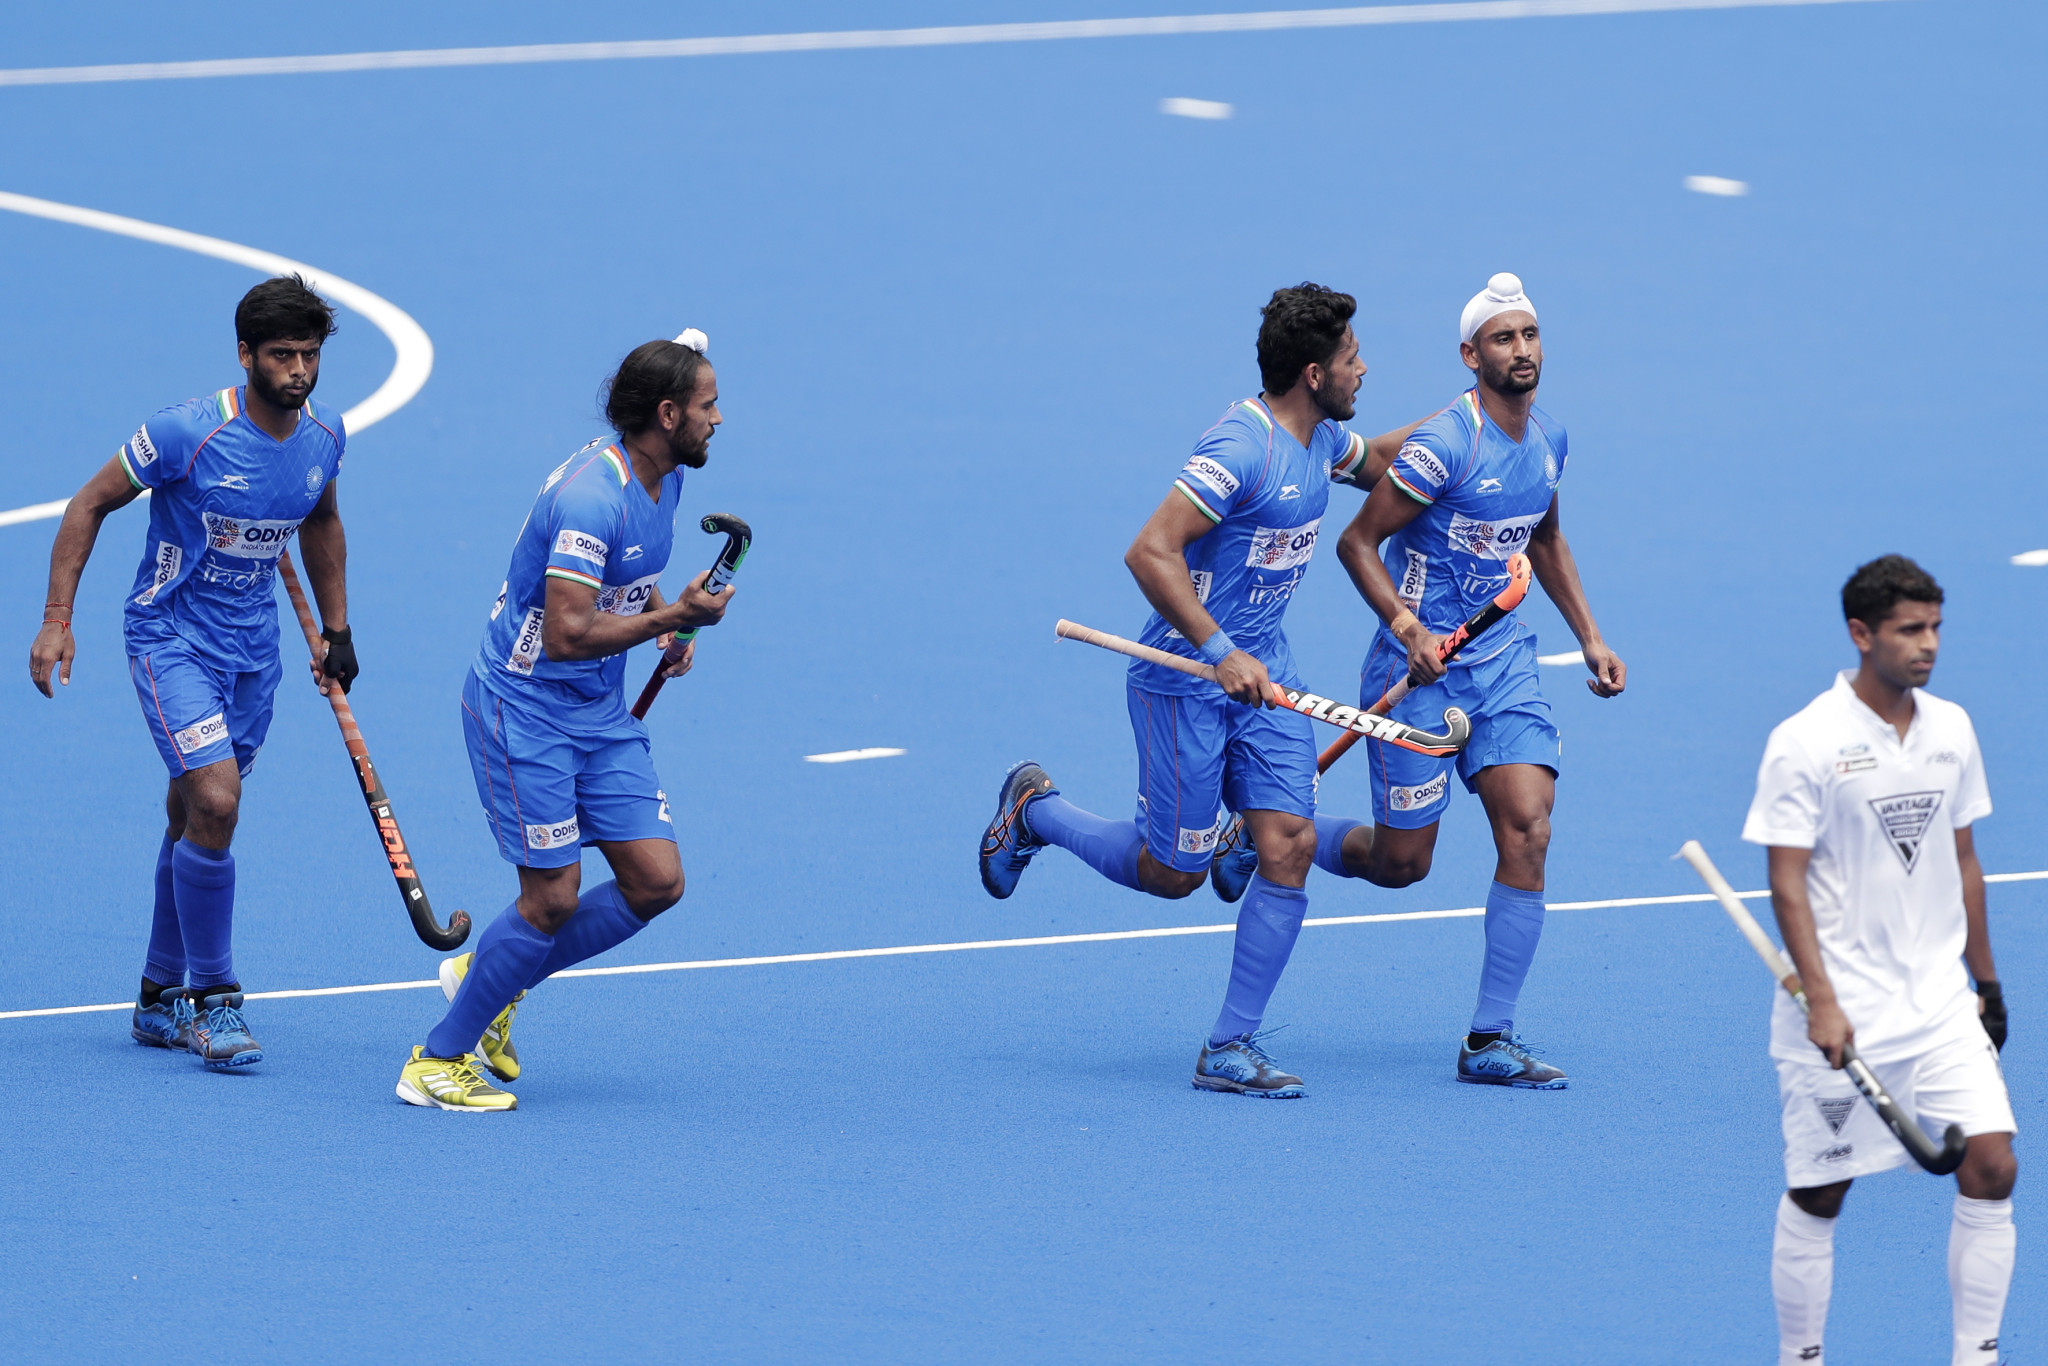 FIH dismiss idea of Olympic qualifier between India and Pakistan in Europe